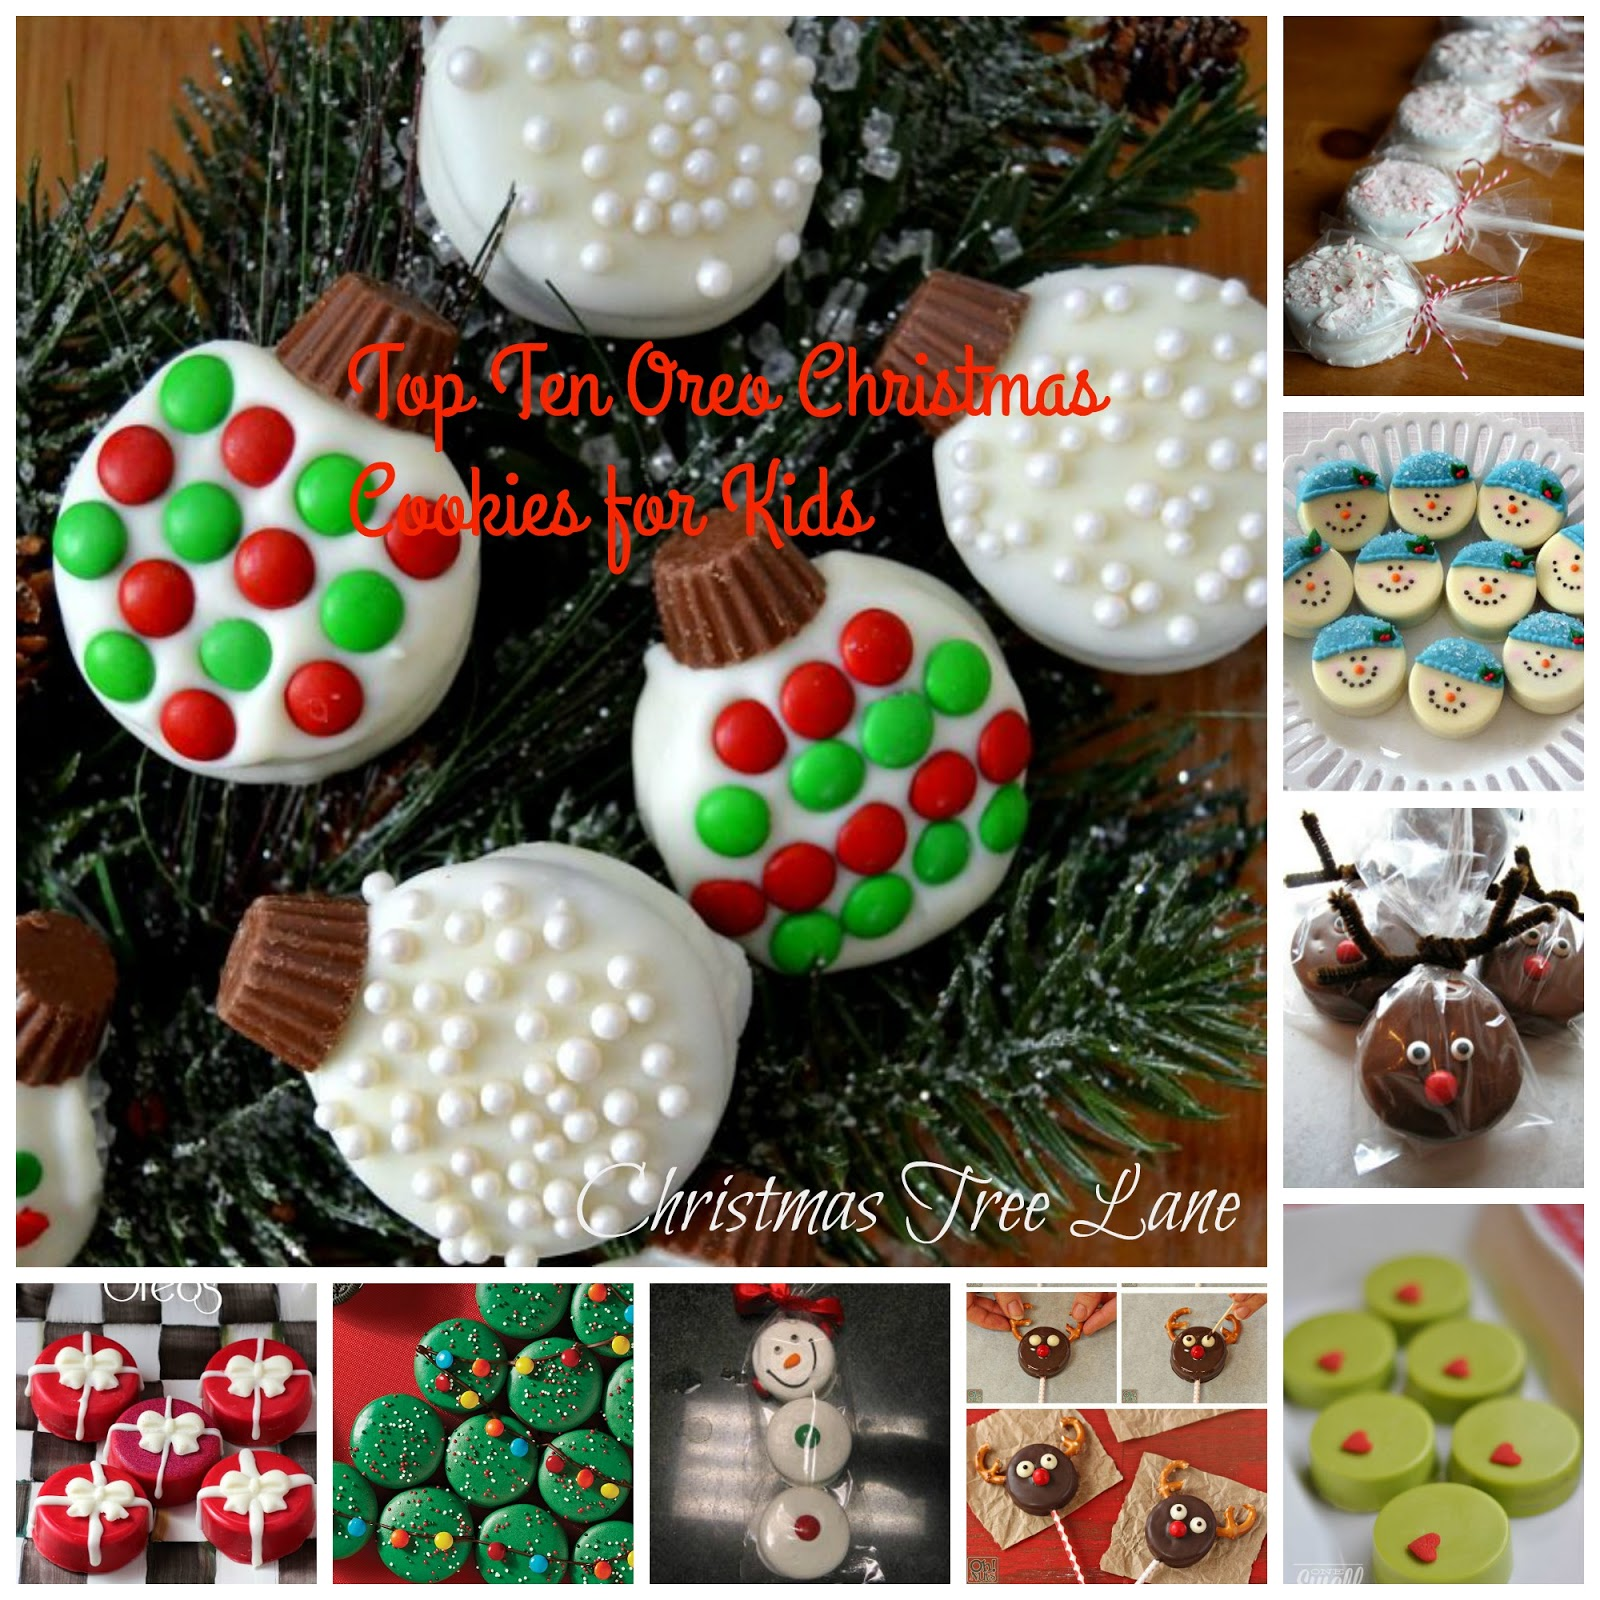 Christmas Tree Lane Top Ten Christmas Oreo Cookies For Kids